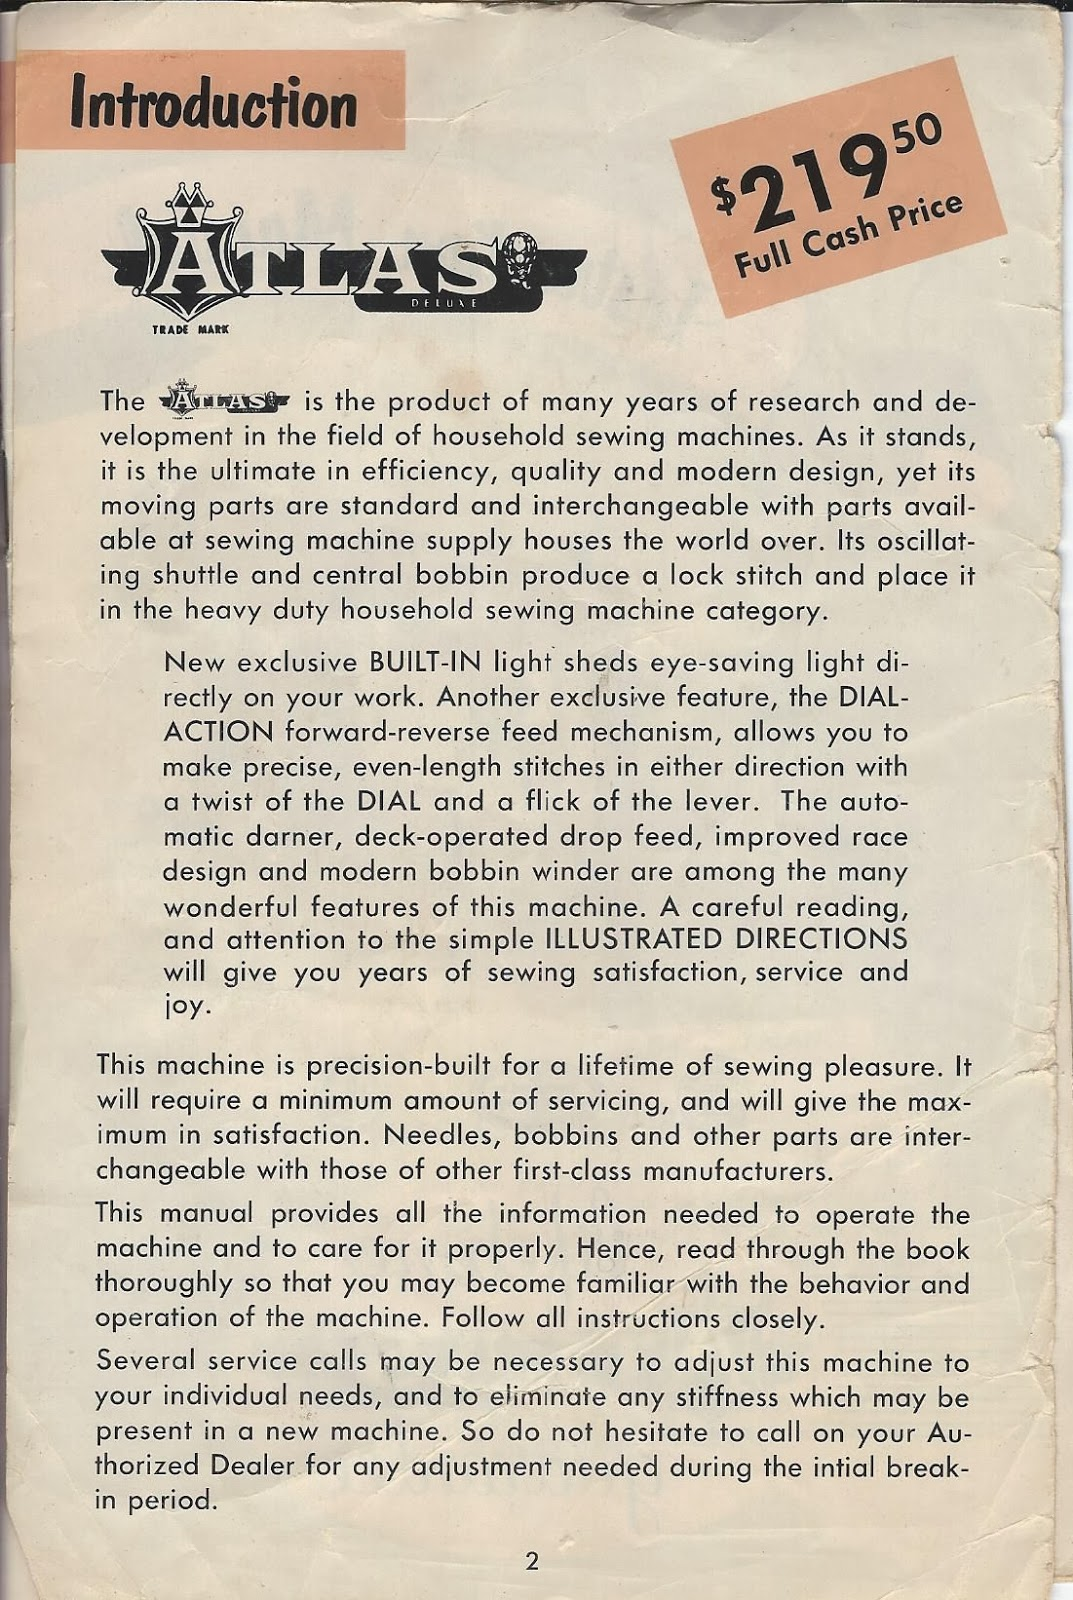 Atlas sewing machine from the 1950's | collectors weekly.